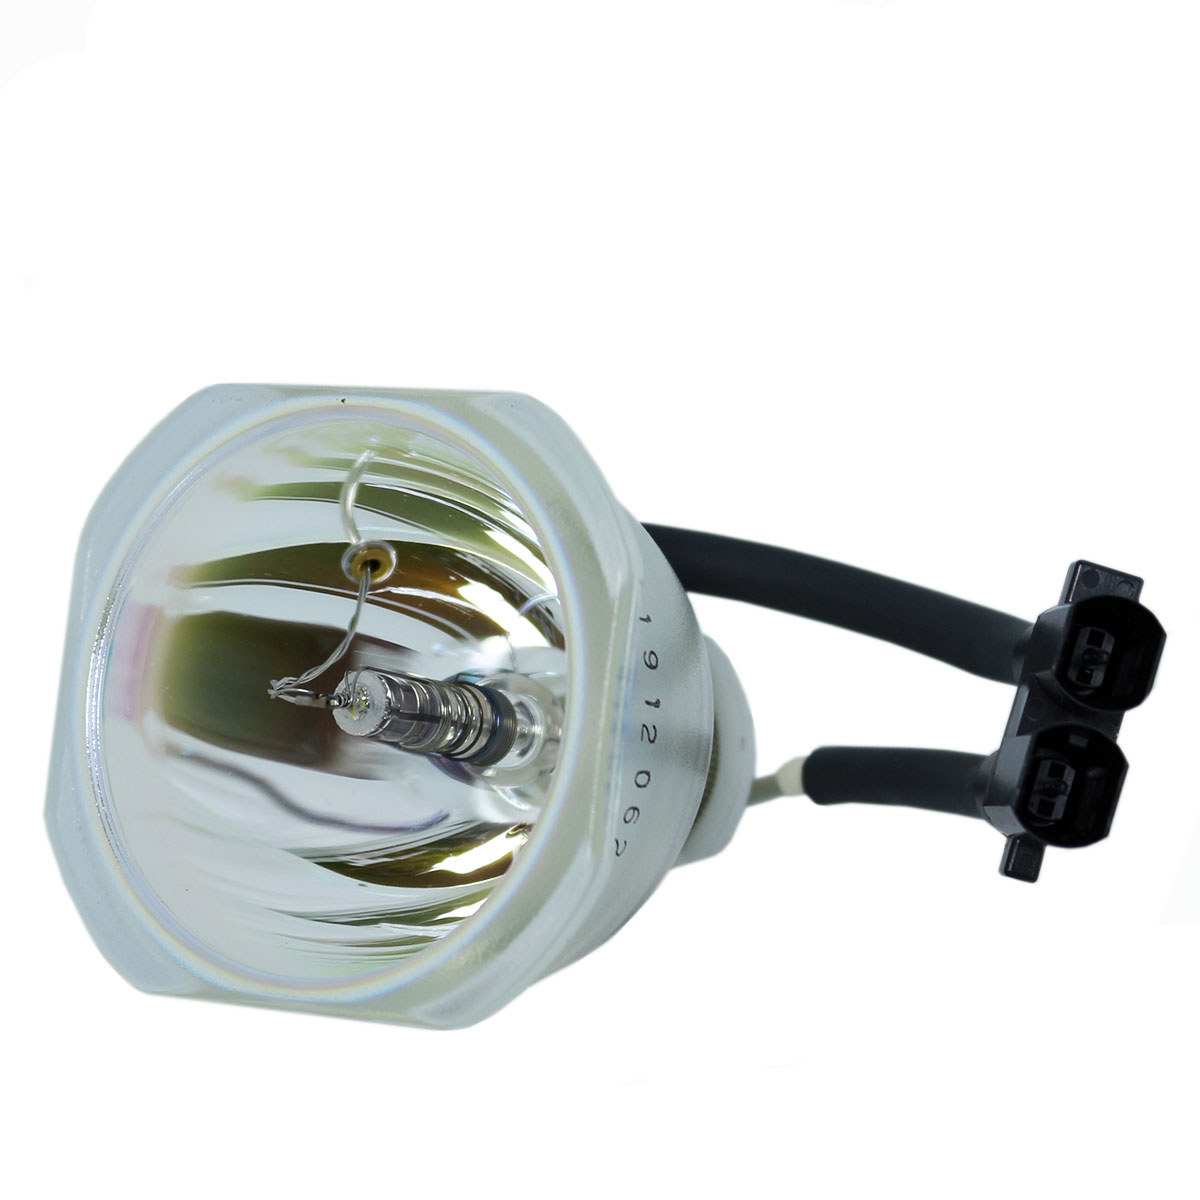 все цены на Compatible Bare Bulb 28-050 / U5-200 for PLUS U5-201/U5-111/U5-112/U5-132/U5-200/U5-232/U5-332/U5-432/U5-512 Projector Lamp Bulb онлайн